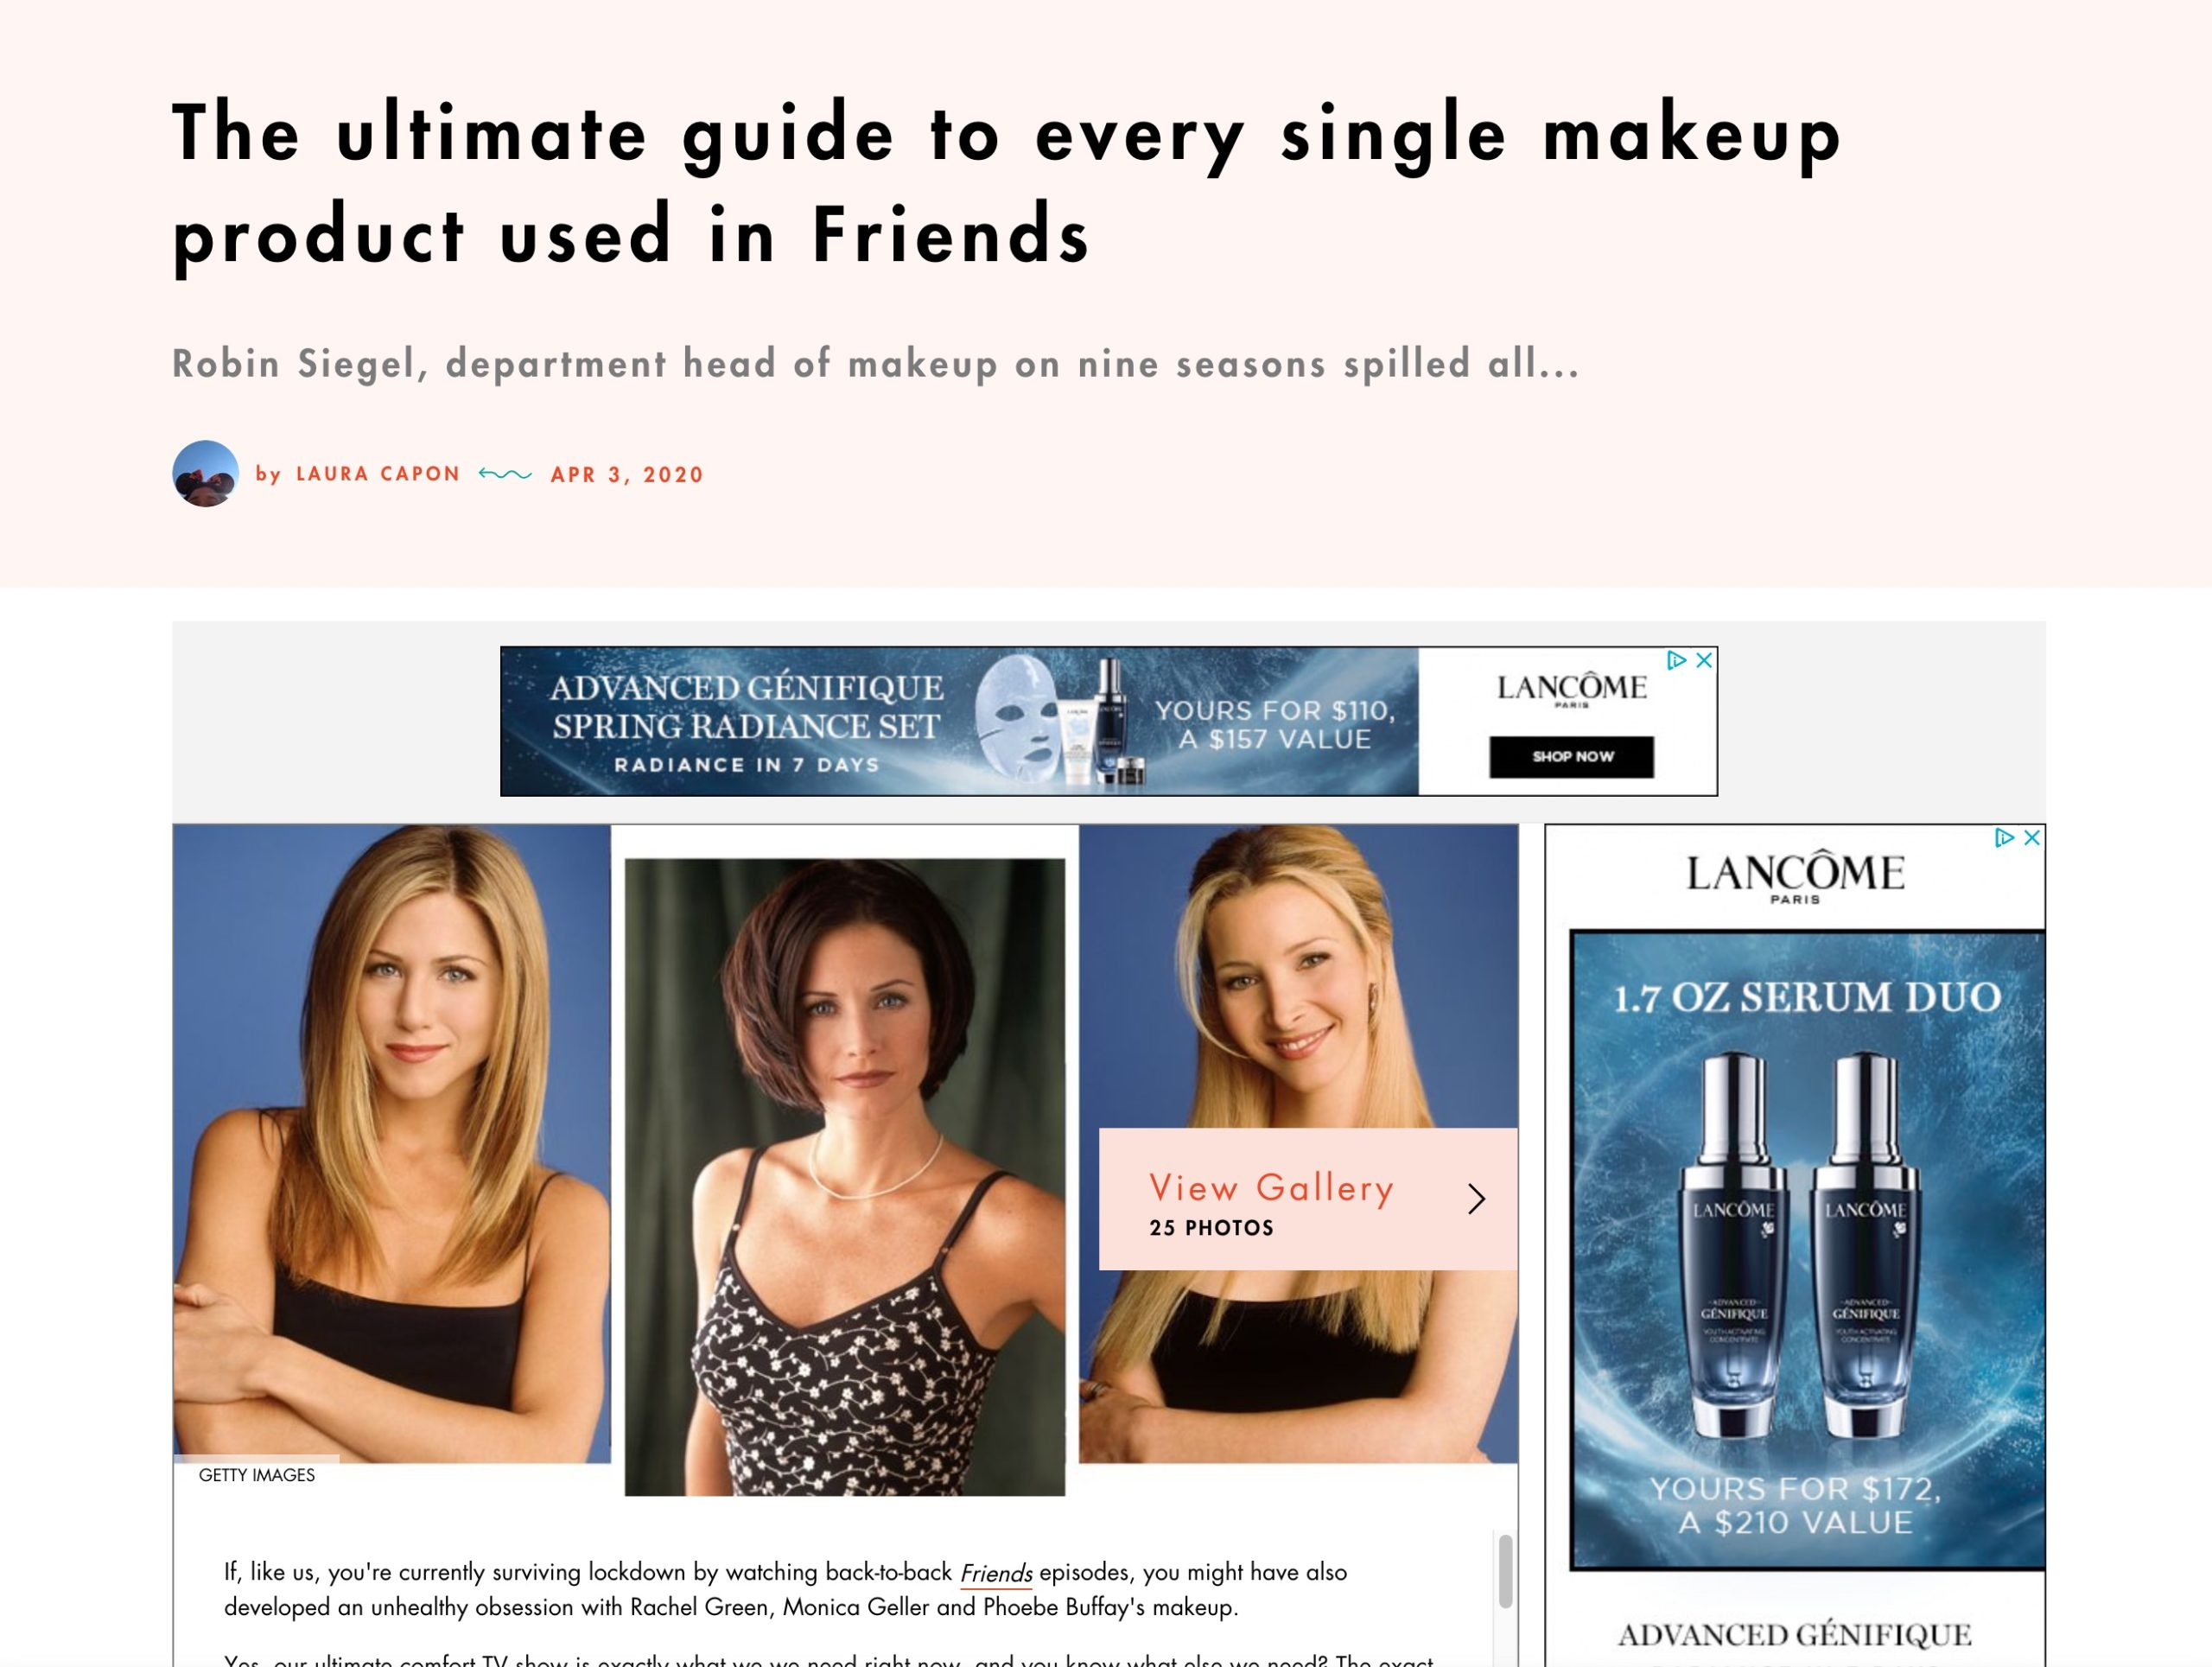 The ultimate guide to every single makeup product used in Friends